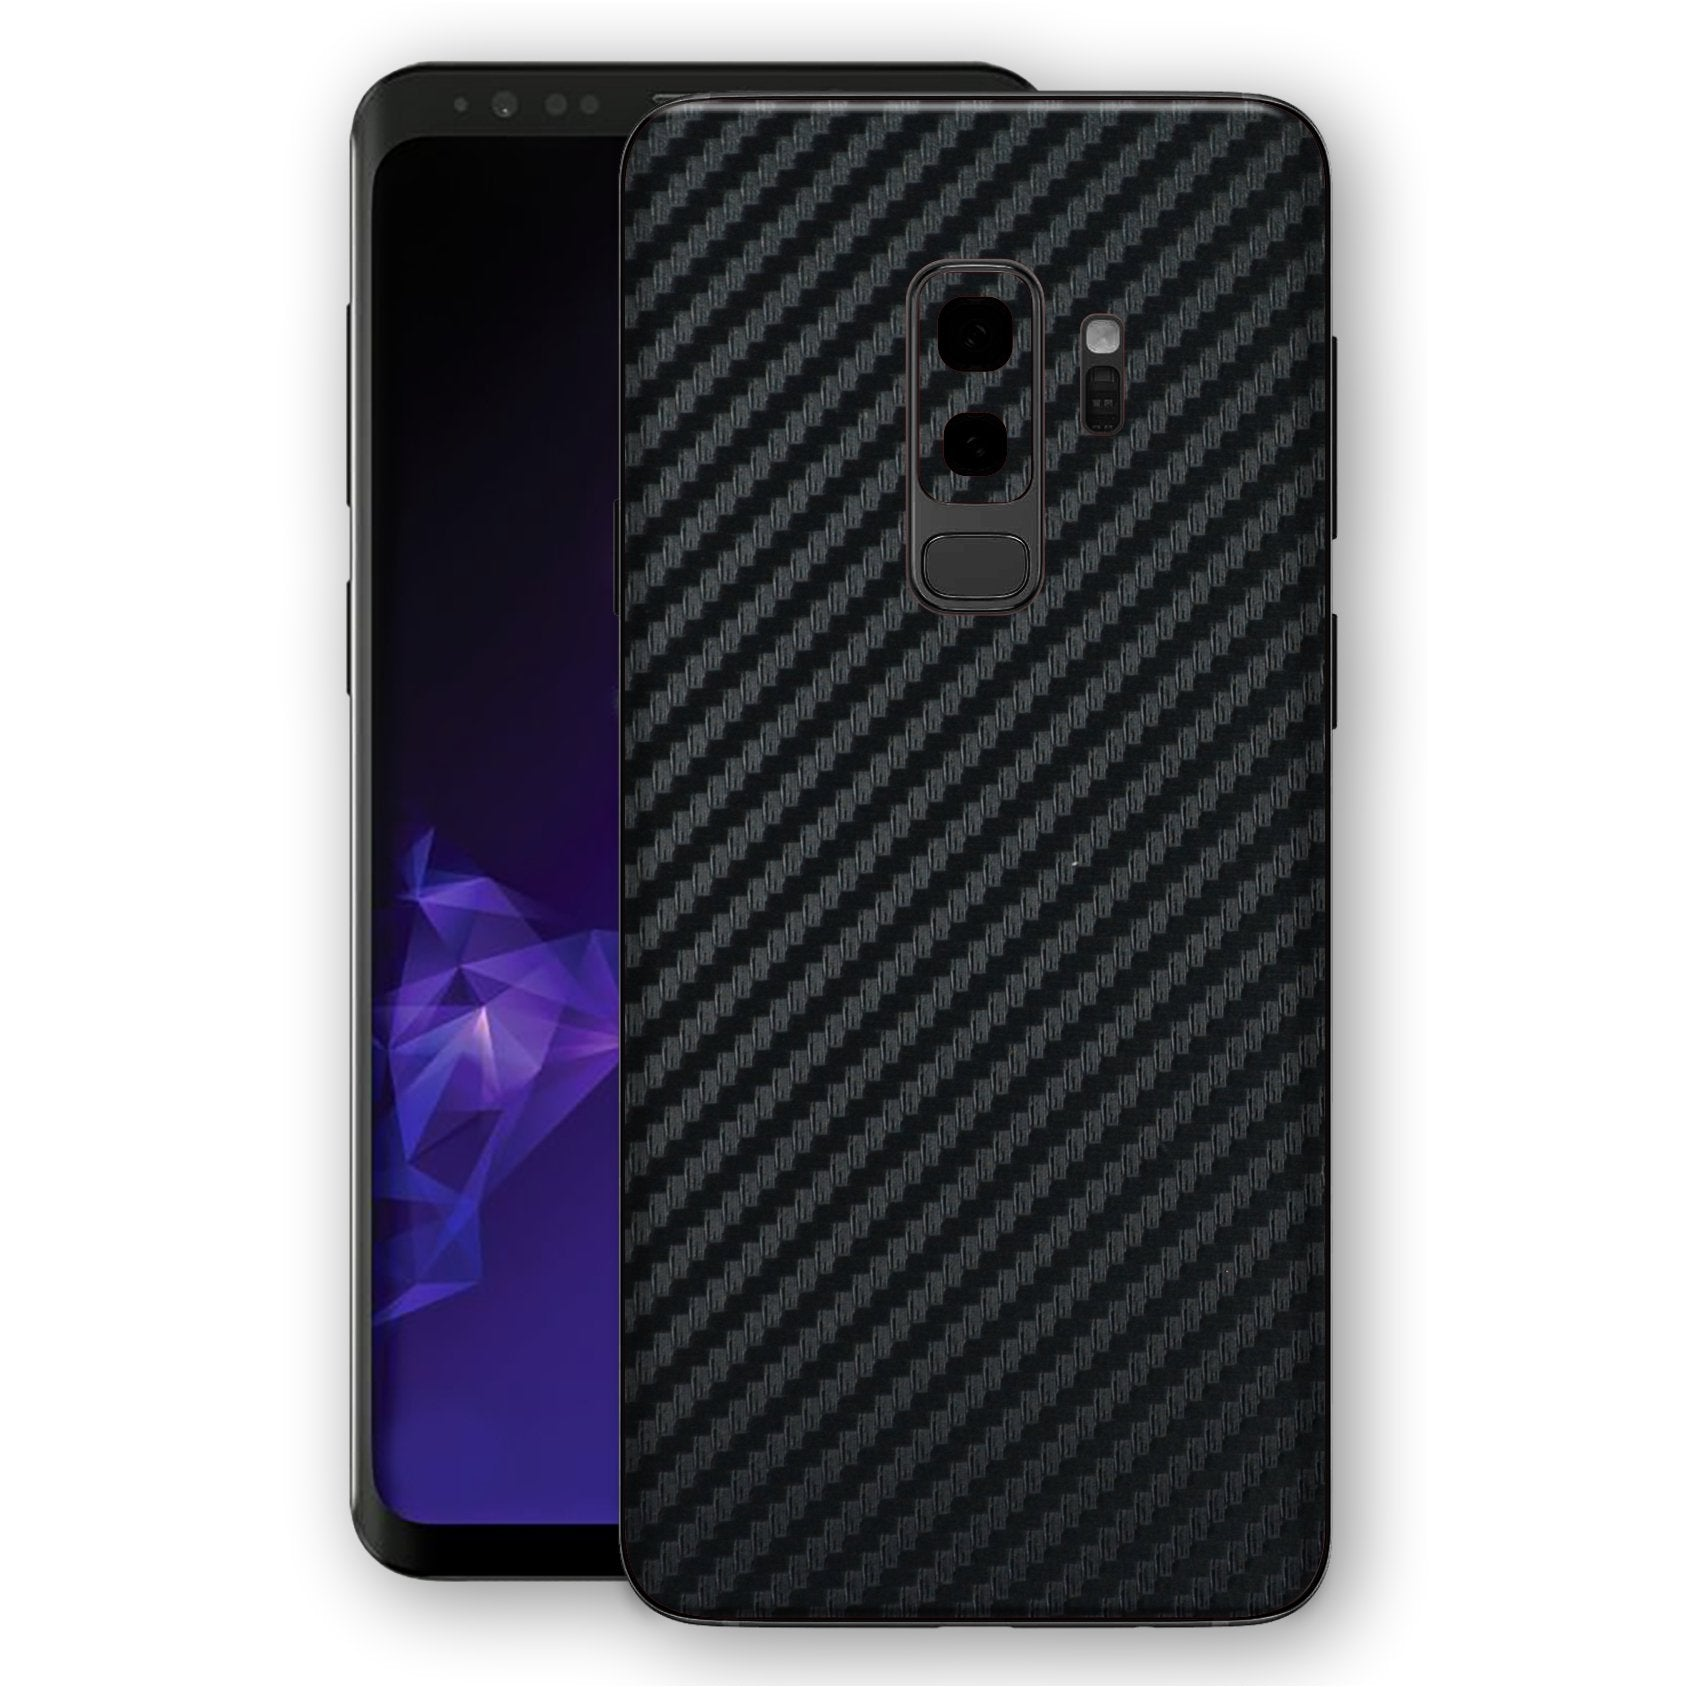 Samsung Galaxy S9+ PLUS 3D Textured Black Carbon Fibre Fiber Skin, Decal, Wrap, Protector, Cover by EasySkinz | EasySkinz.com